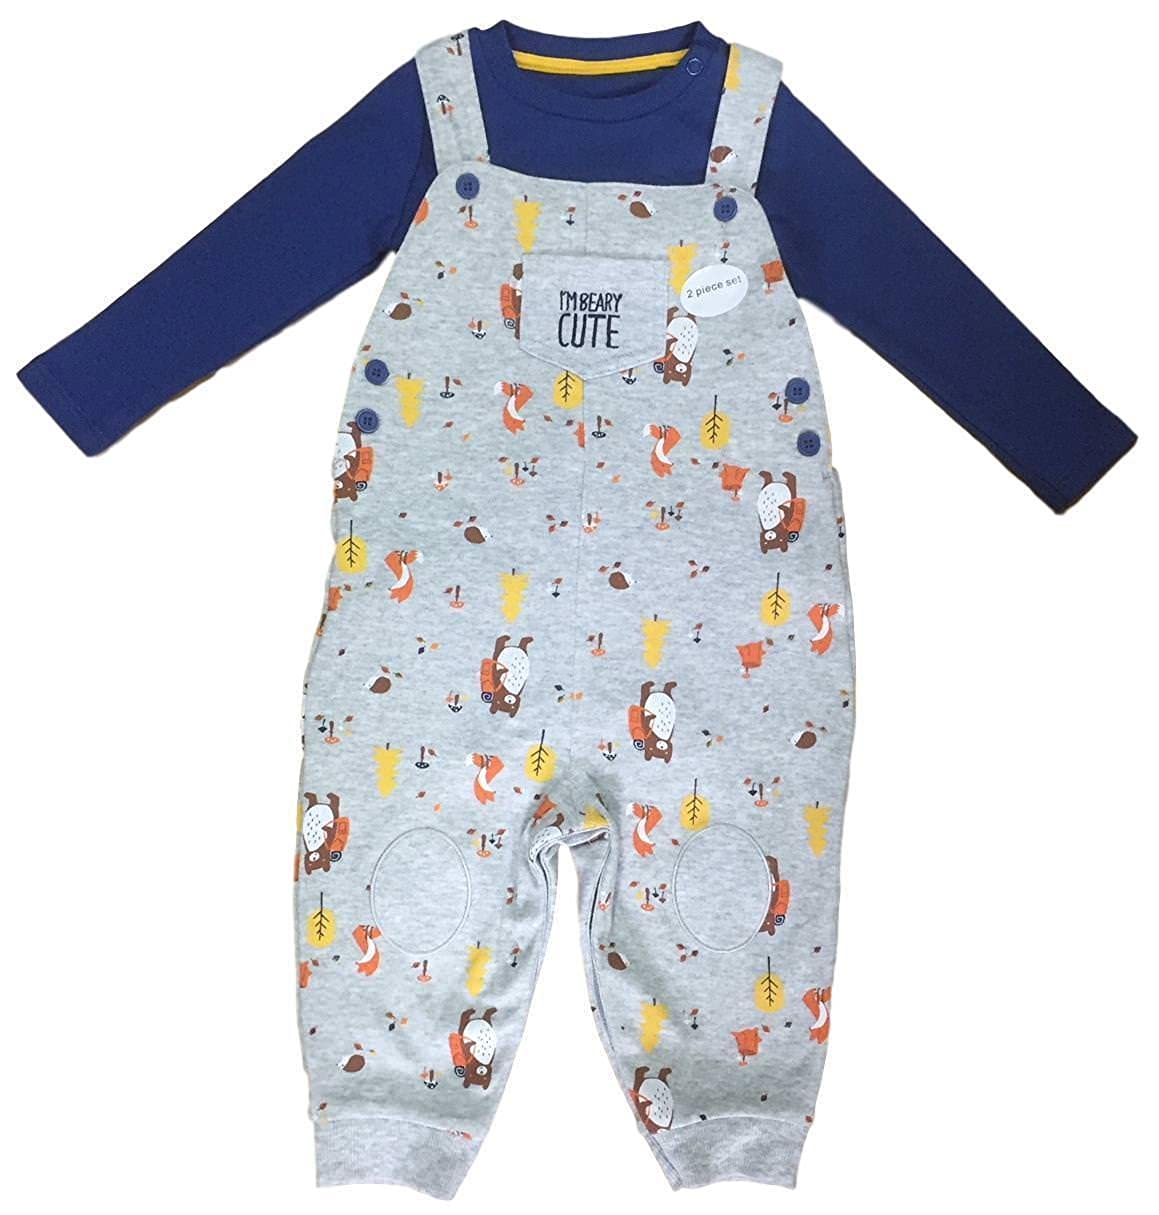 Ex UK Store Baby Boys Dungaree Bodysuit 2PC Outfit Set Bear Theme